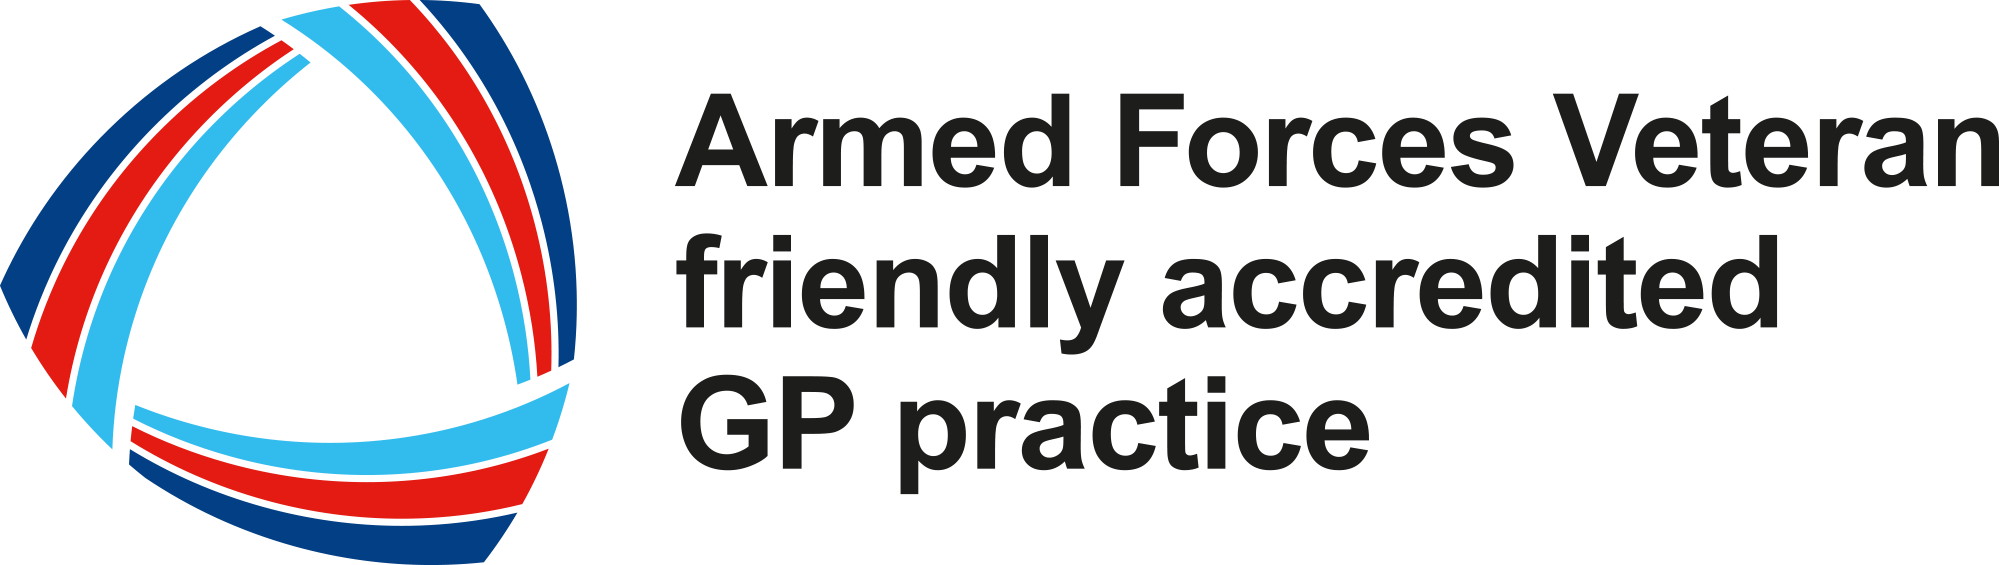 Armed Forces Veteran Friendly Practice